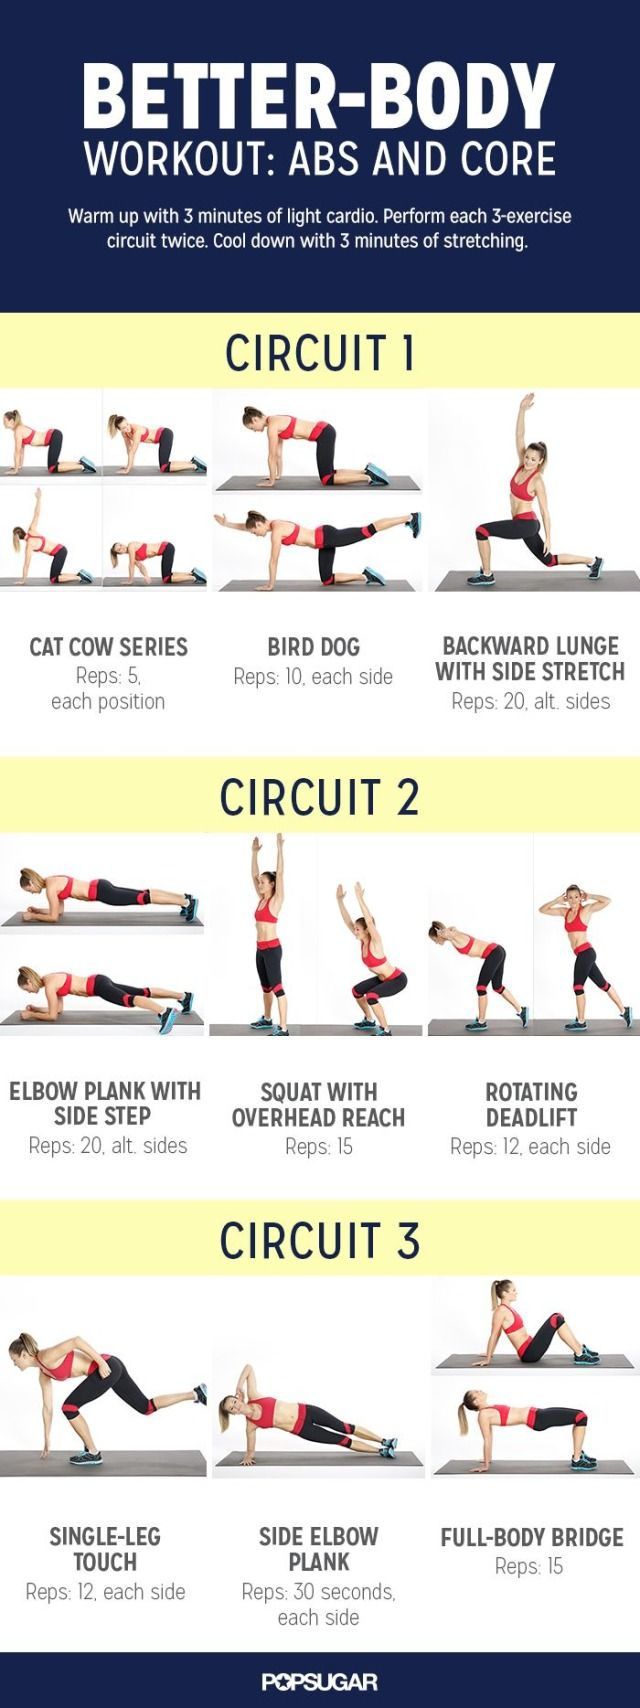 Get a better body now, starting with this workout circuit that targets your abs and core. You'll hit all the major muscles, and there are no boring crunches required!